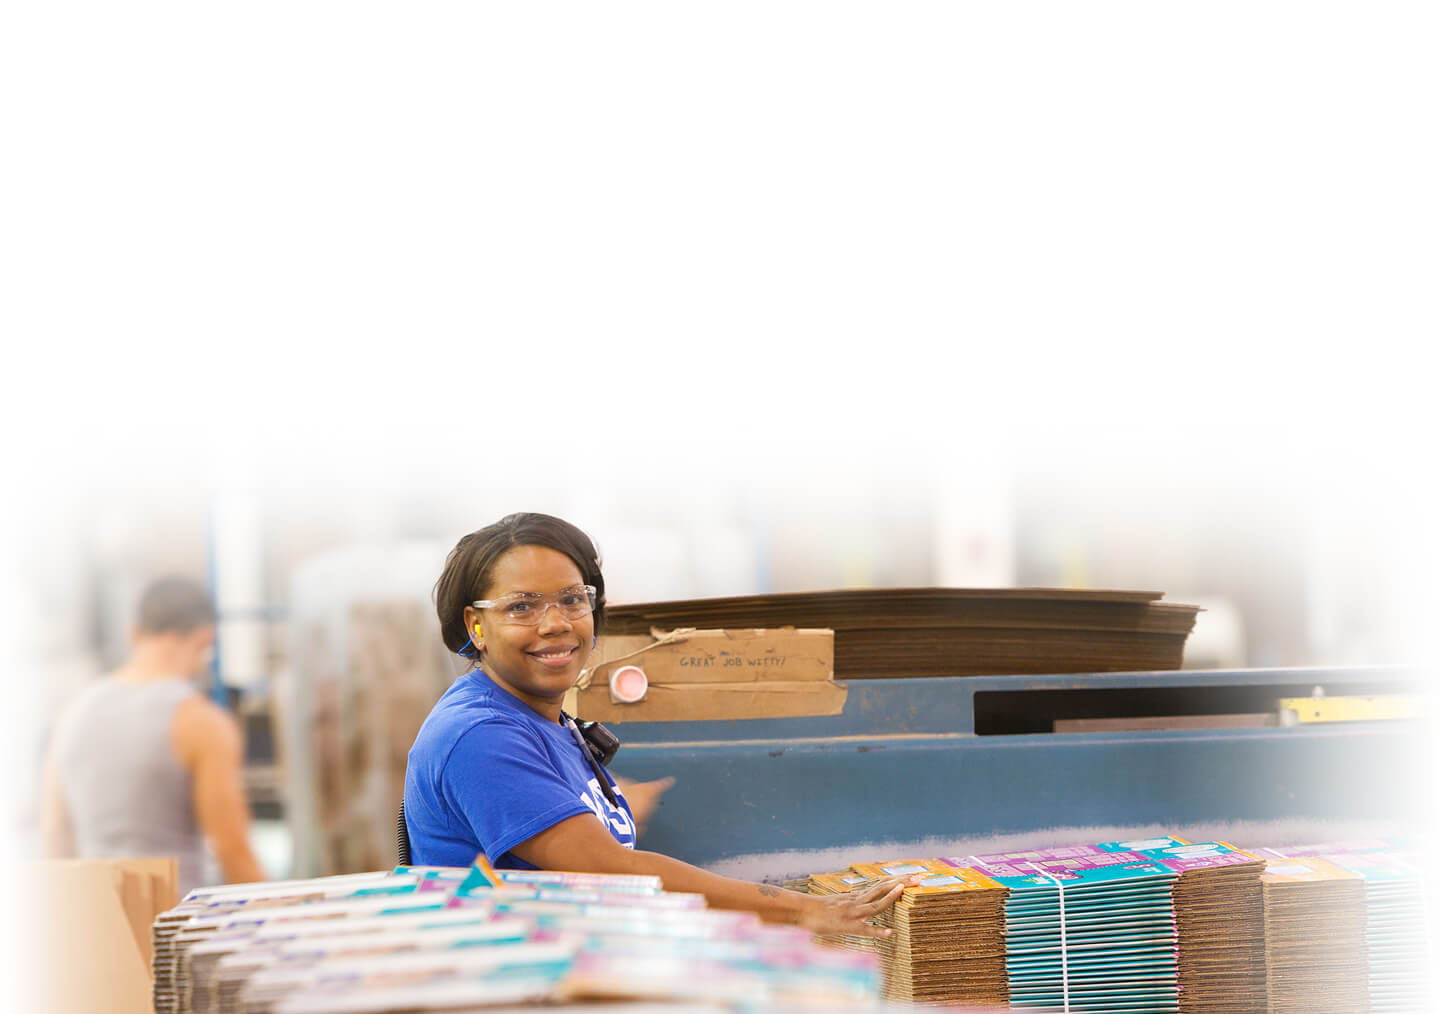 Woman working in packaging factory